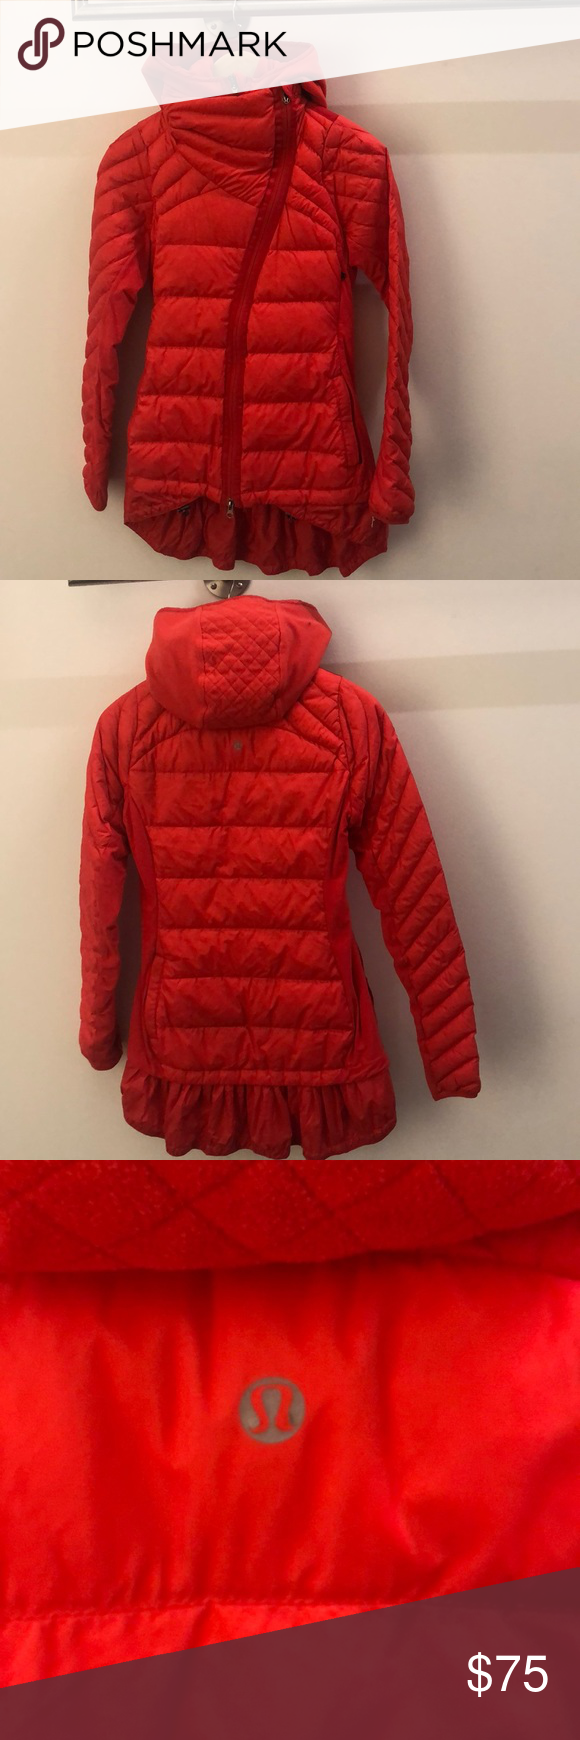 Lululemon Red Puffer With Detachable Dickie Sz 4 Red Puffer Jacket Red Puffer Puffer [ 1740 x 580 Pixel ]